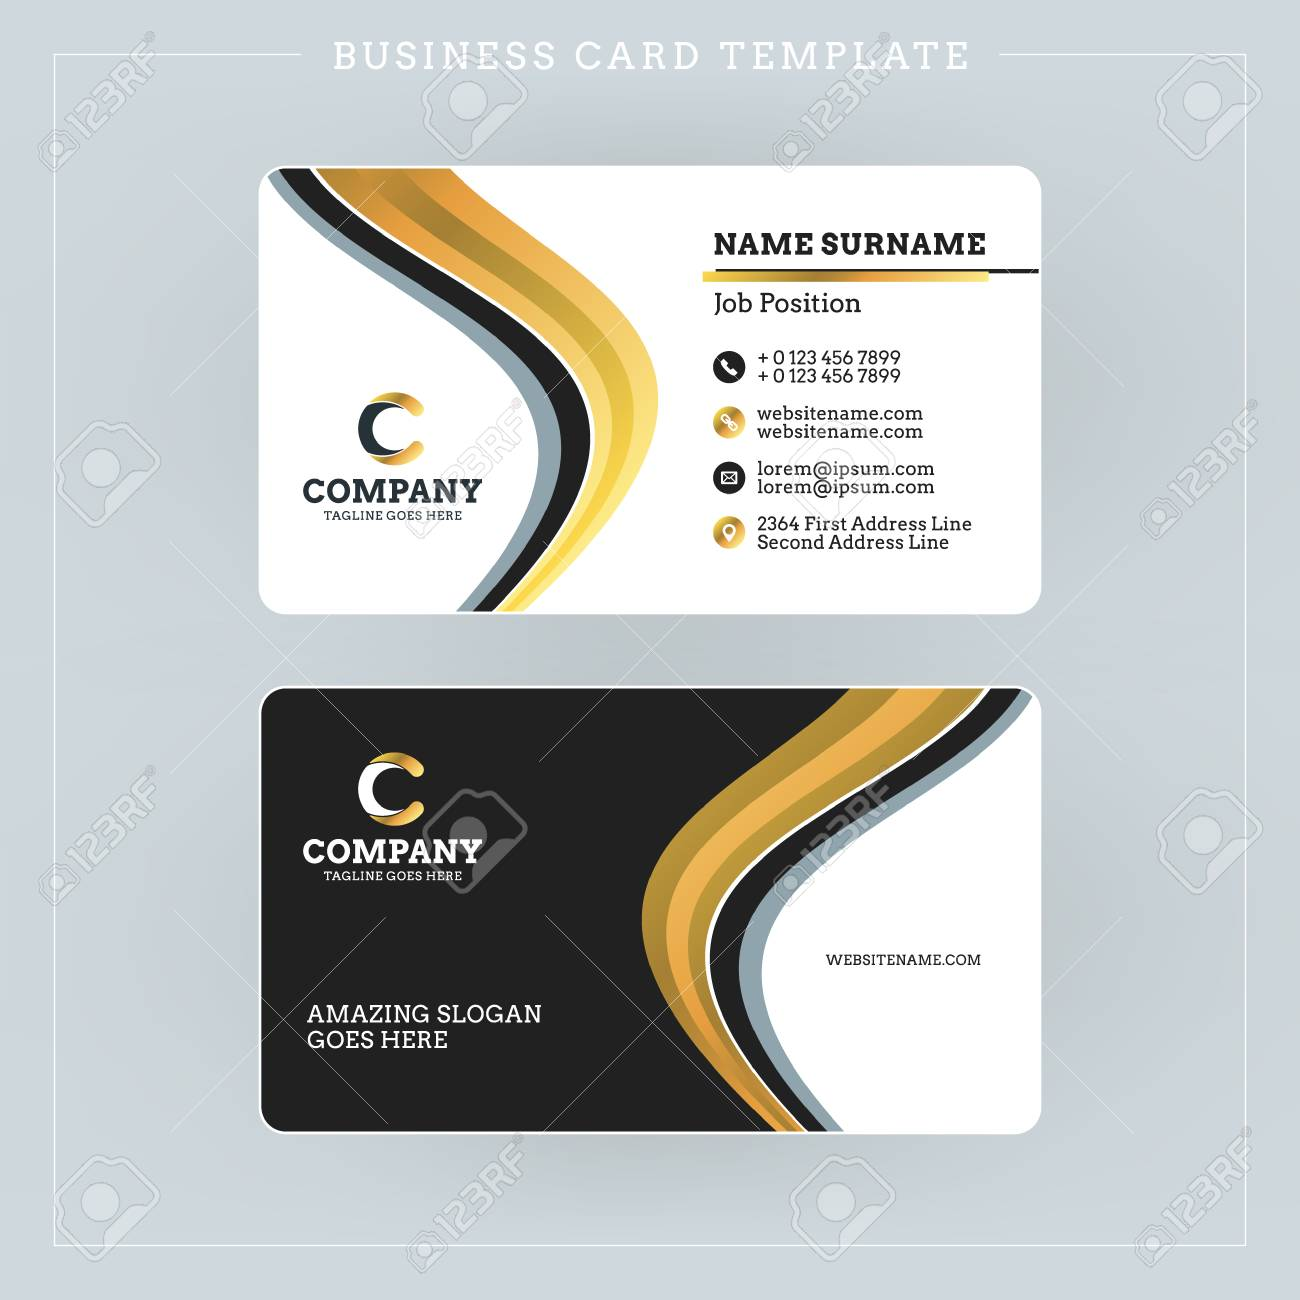 Double sided business card template with abstract golden and double sided business card template with abstract golden and black waves background vector illustration reheart Choice Image